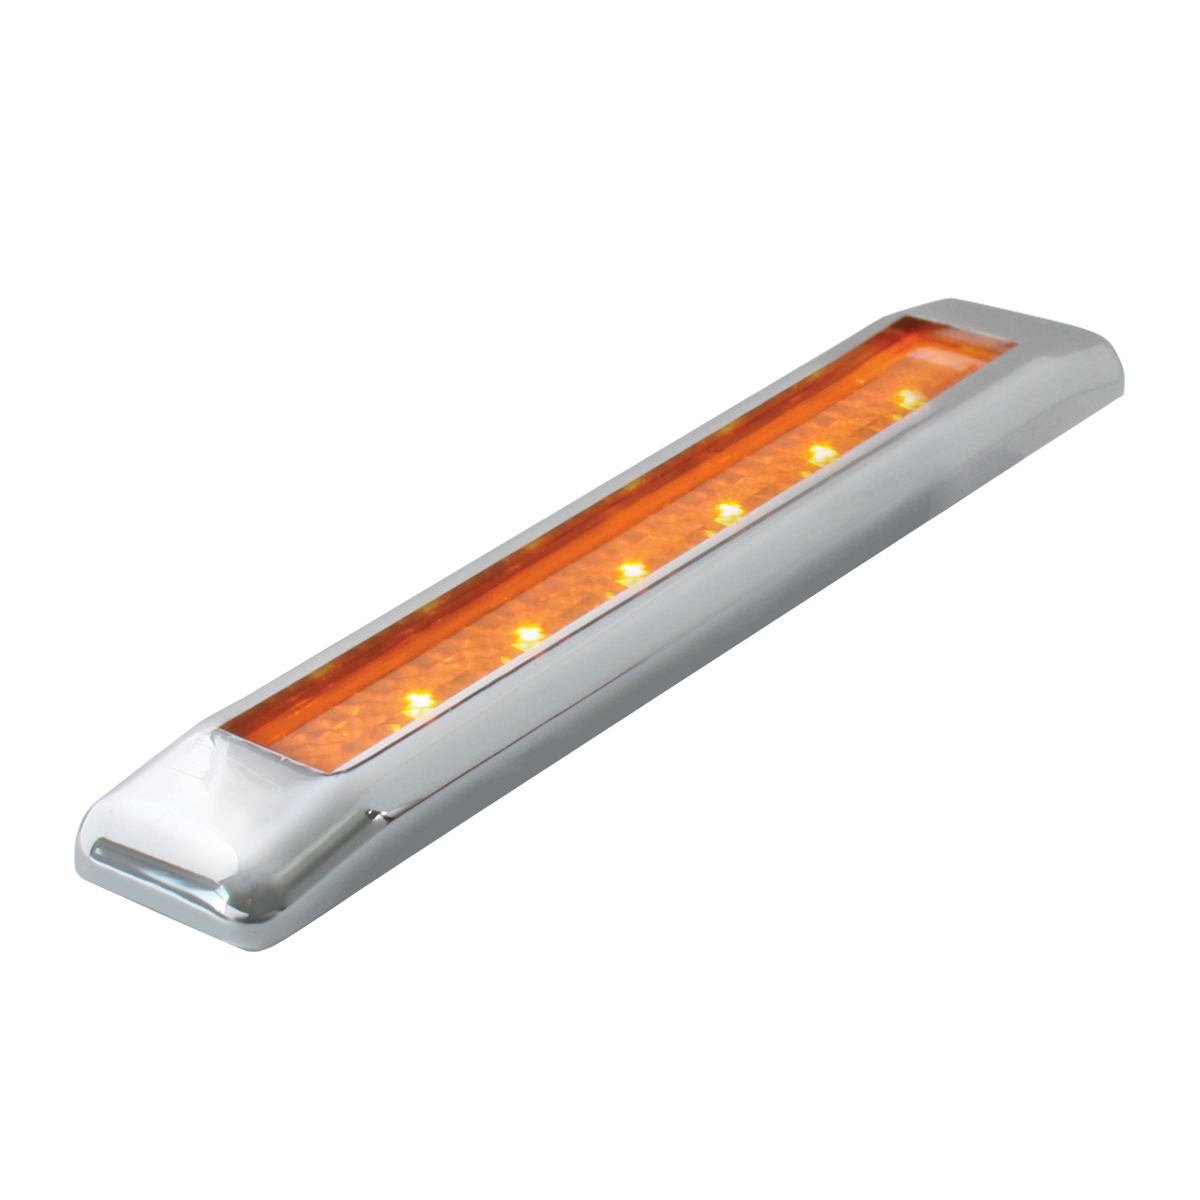 "76040 6.25"" Ultra Thin LED Marker Light Bar in Amber/Amber"